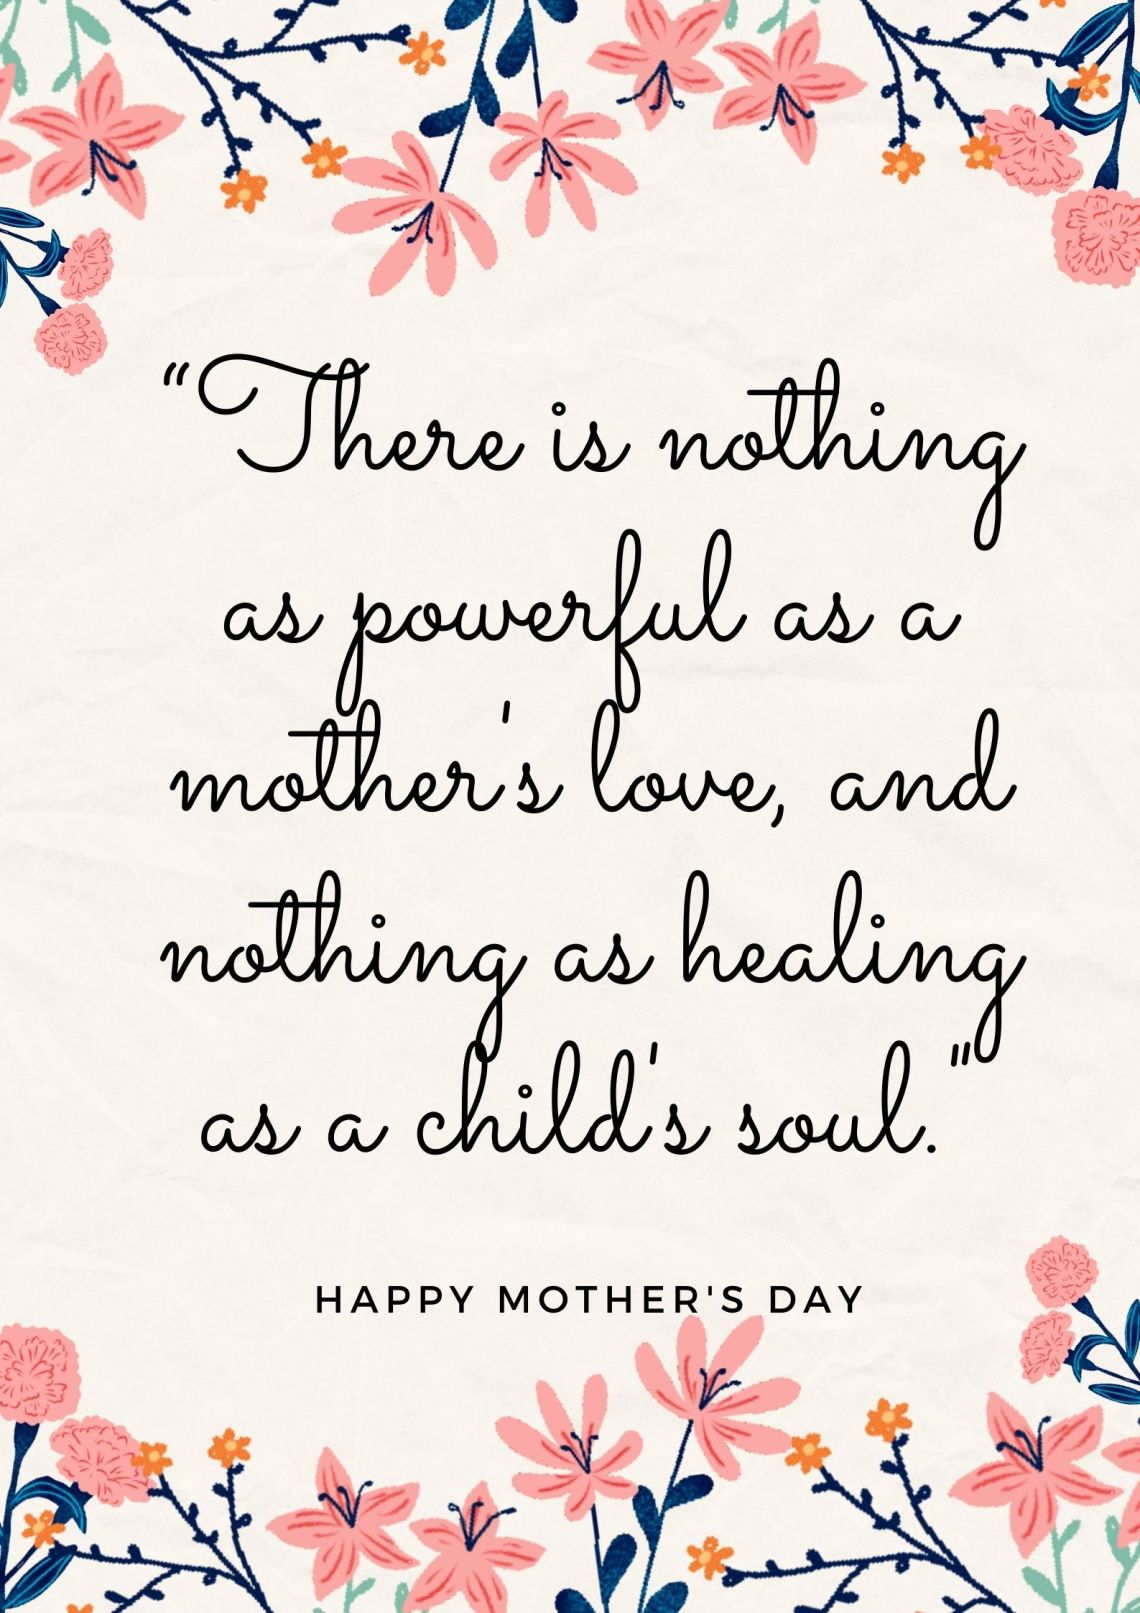 Mother's Day quotes and gifs